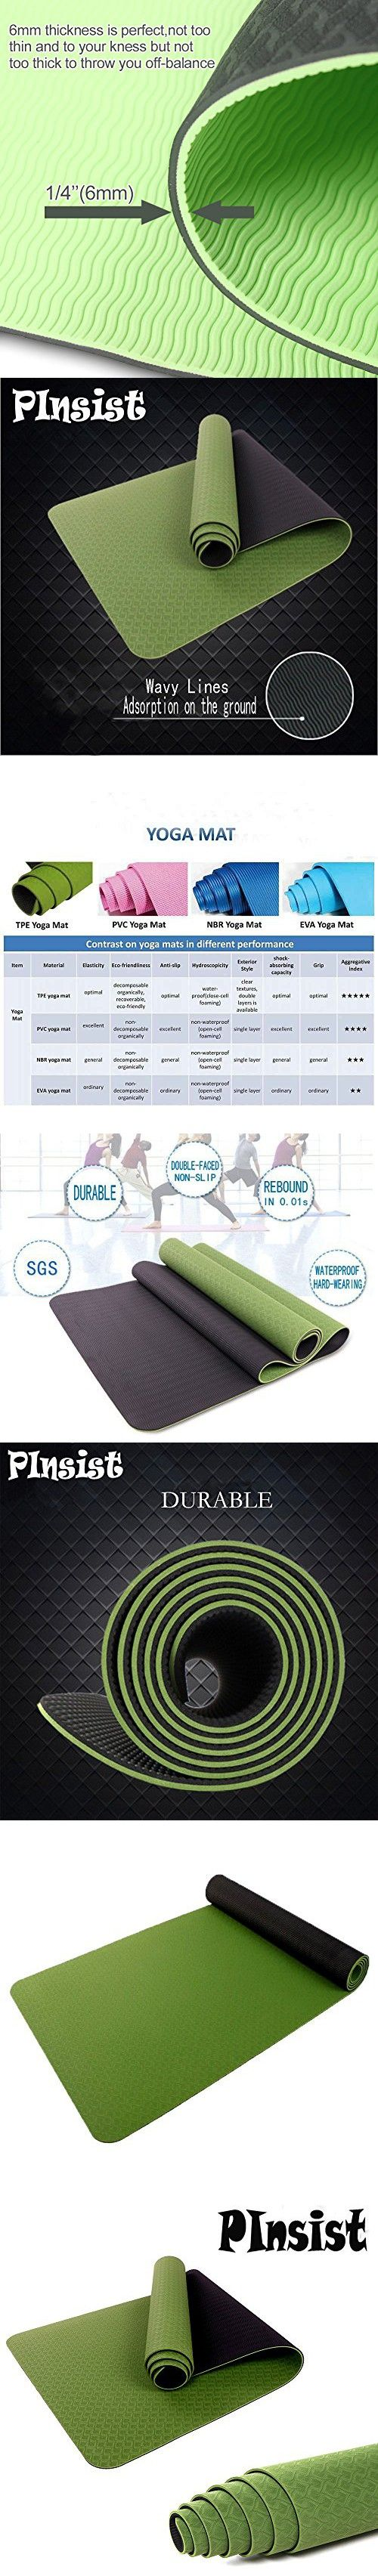 Yoga Mats, Pinsist Durable TPE 6mm Thick Non-Slip Anti-tear Exercise Mat with Carrying Strap For Hot Yoga Pilate Fitness Workout (Purple)